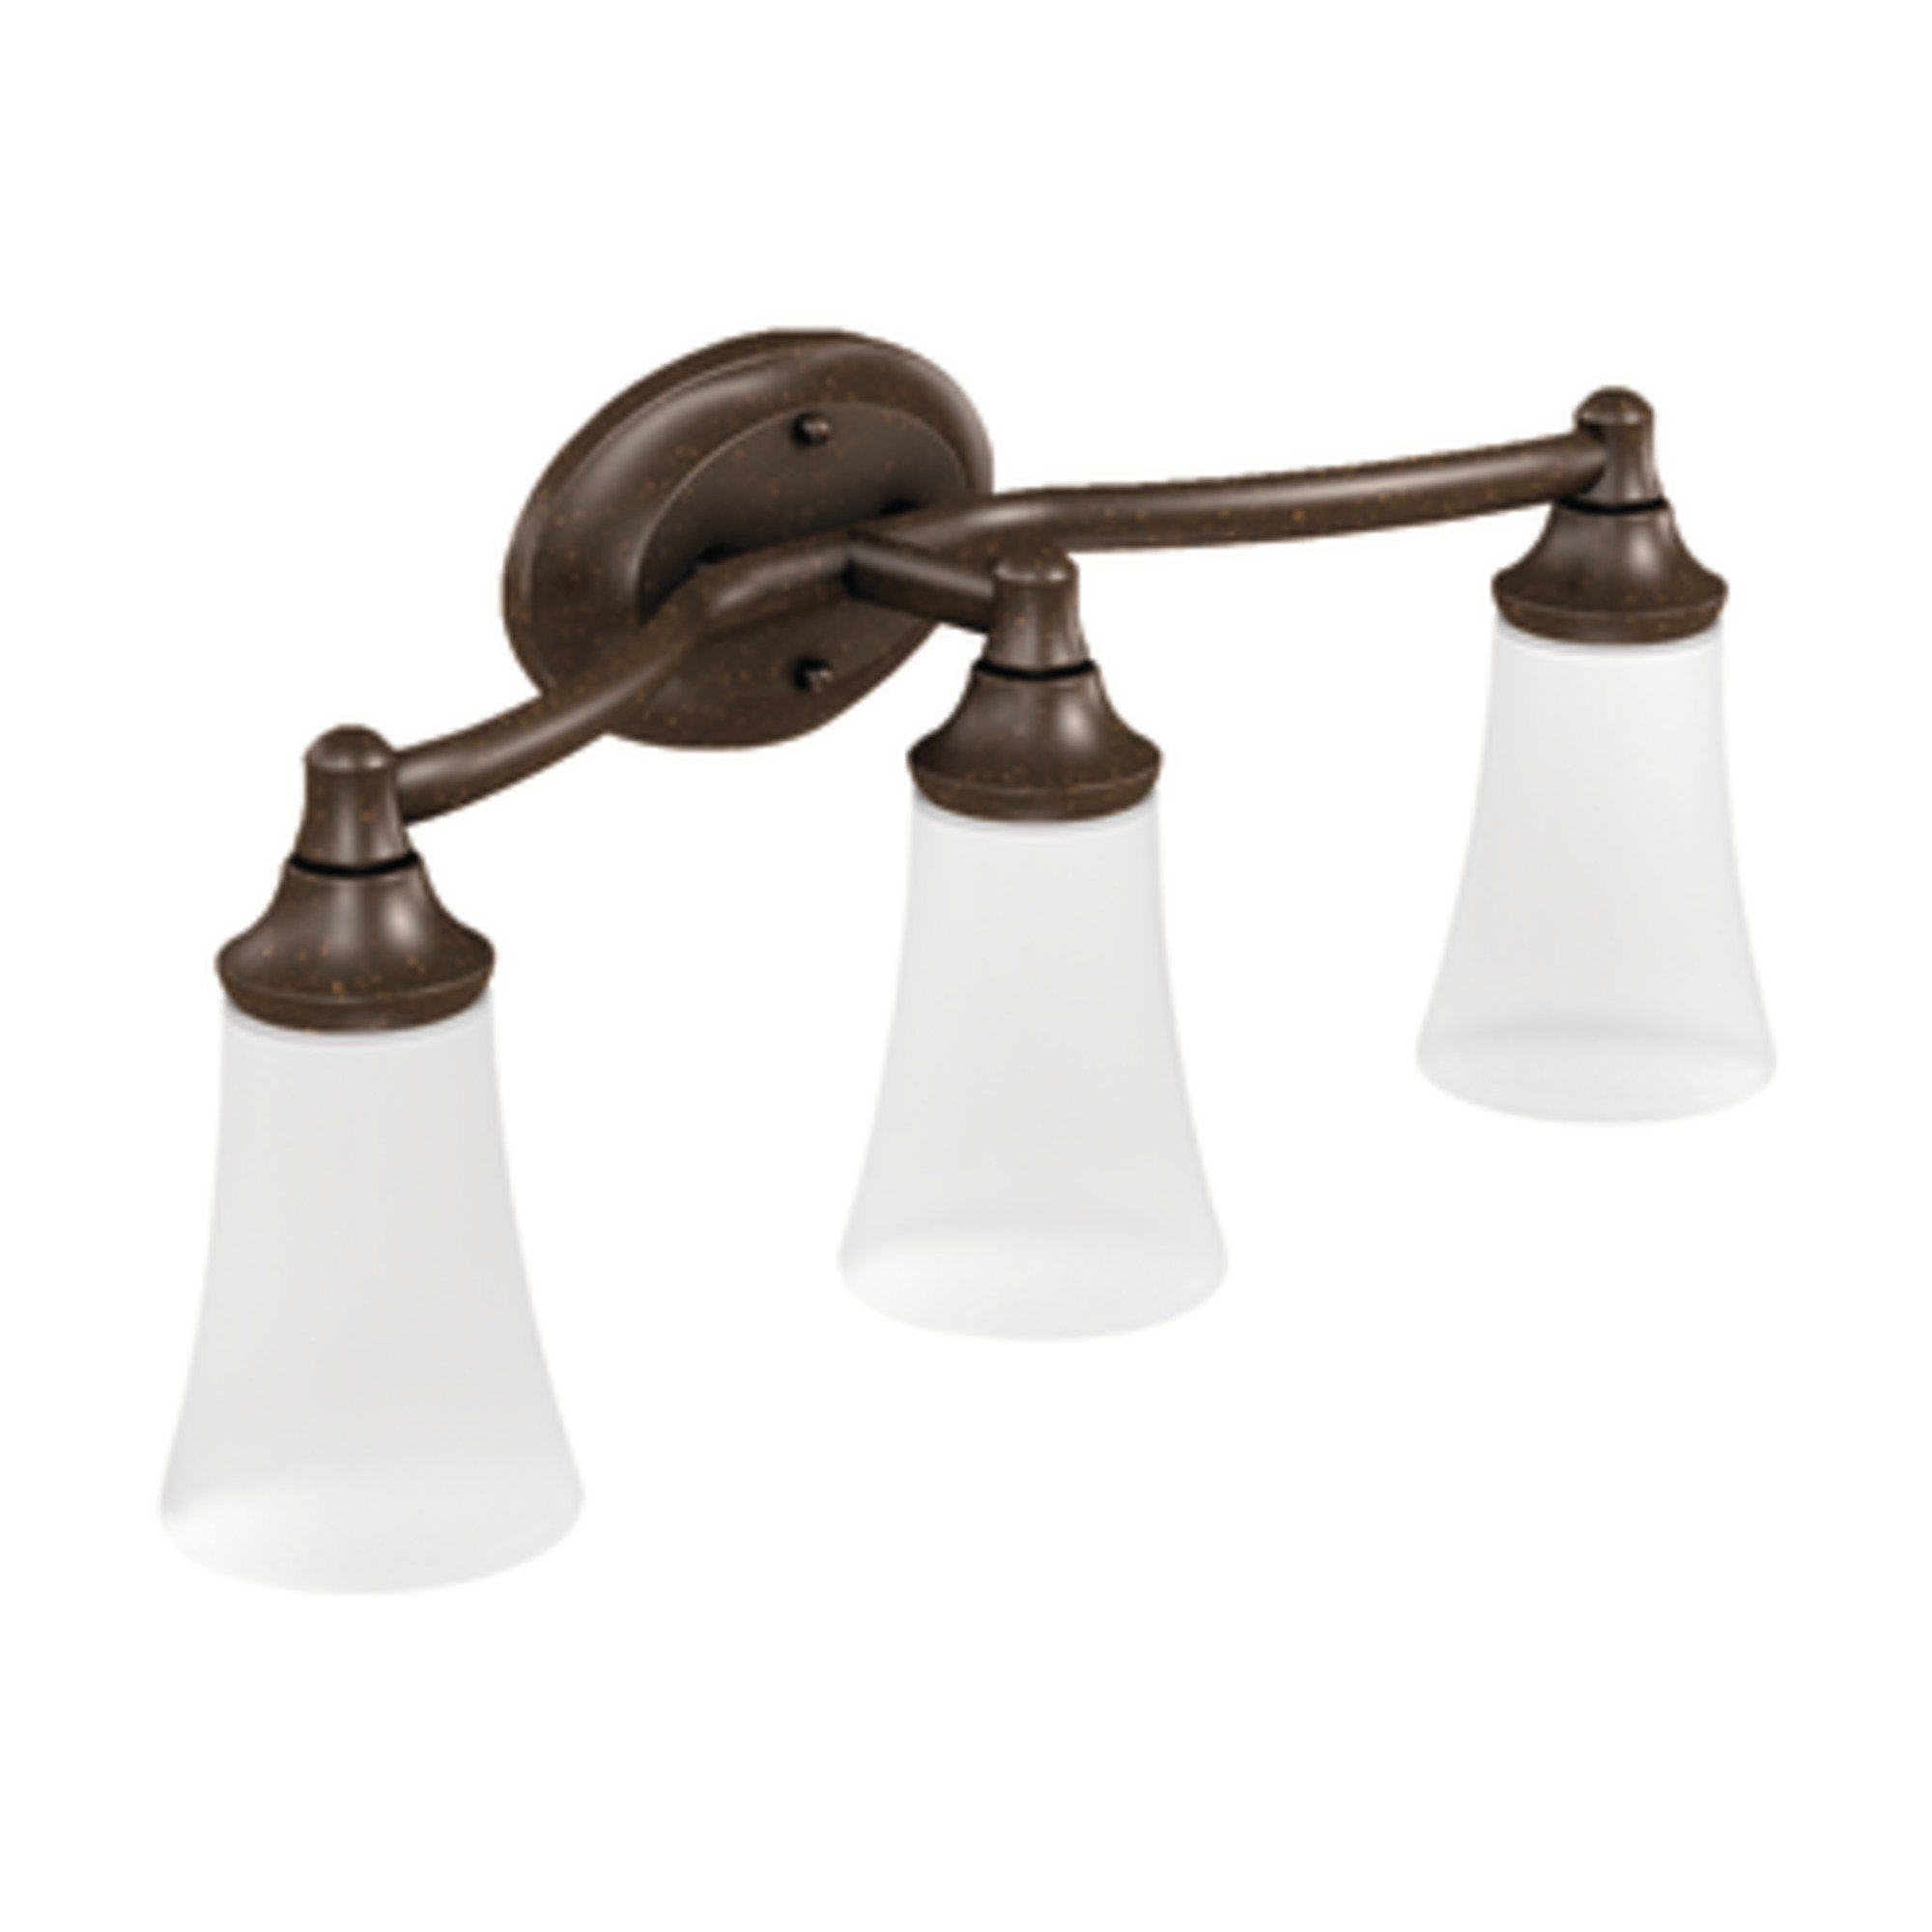 Moen YB2863ORB Eva Bath Lighting, Oil Rubbed Bronze by Moen